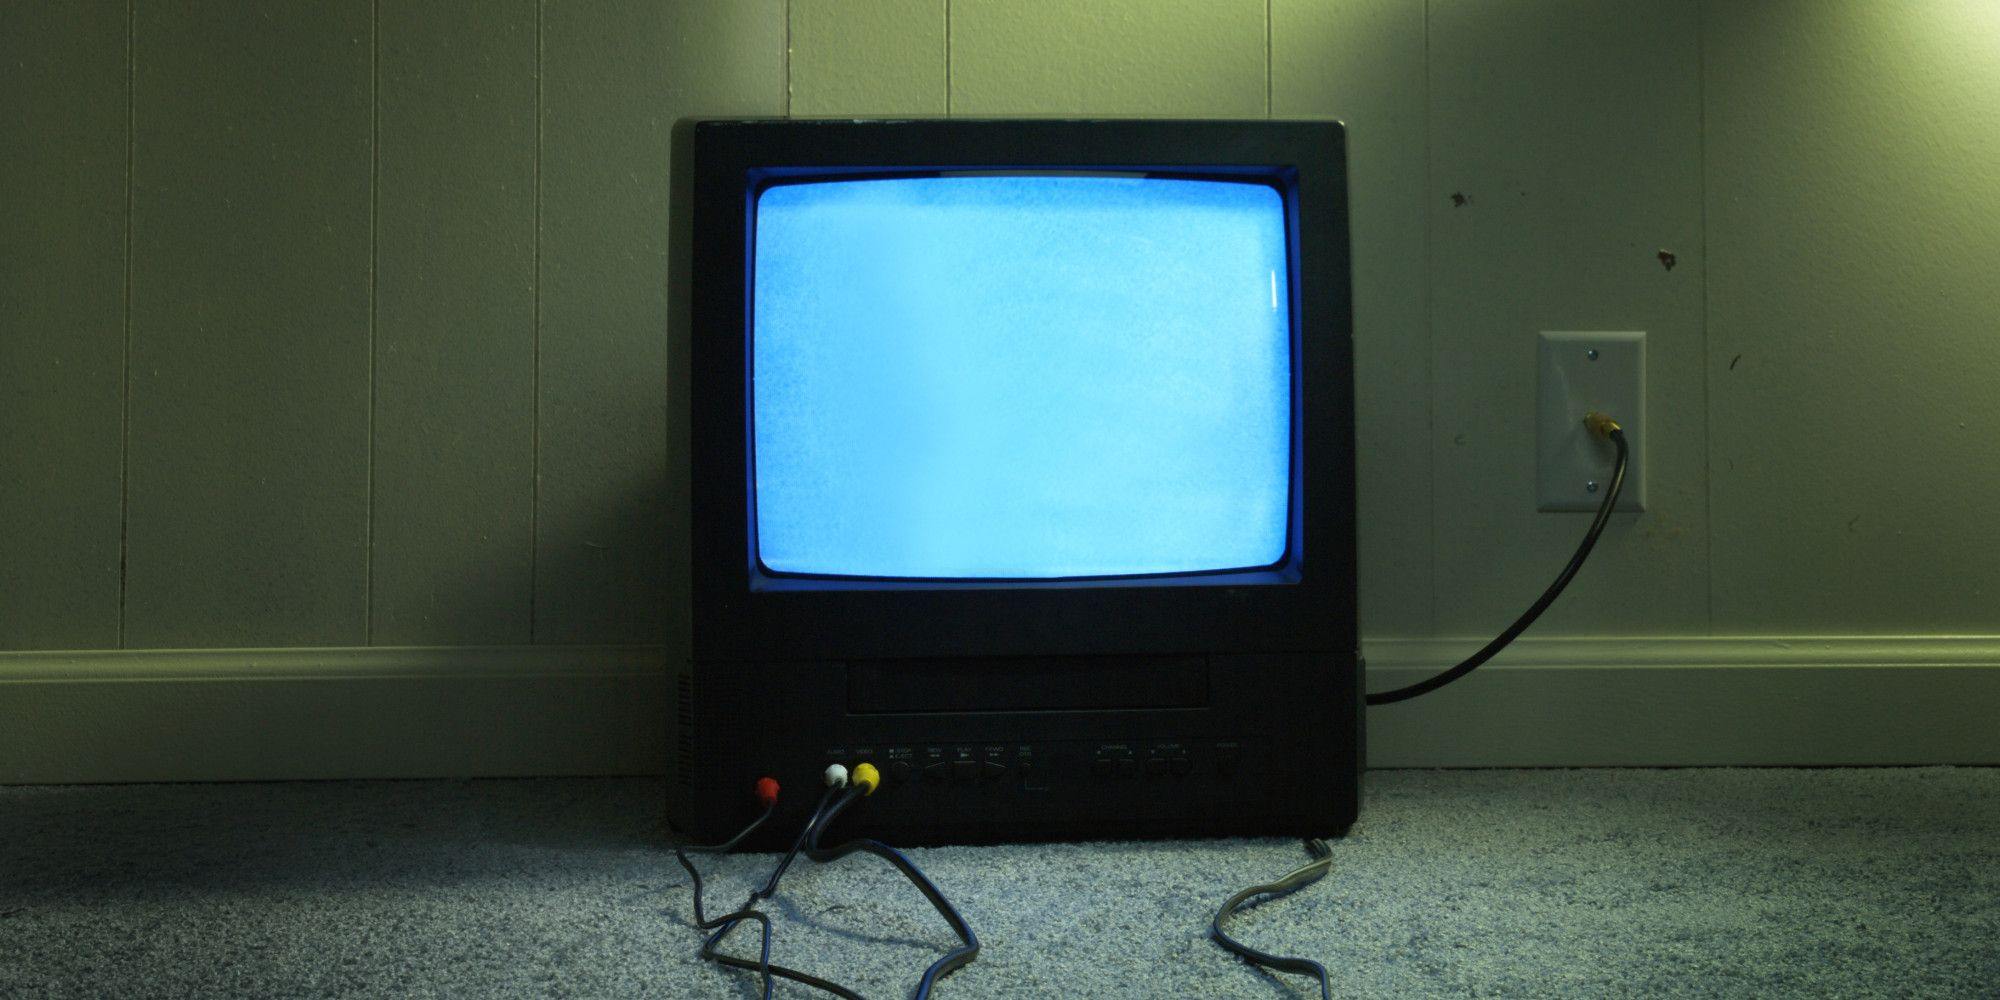 Your ridiculously high cable bill could go up even more